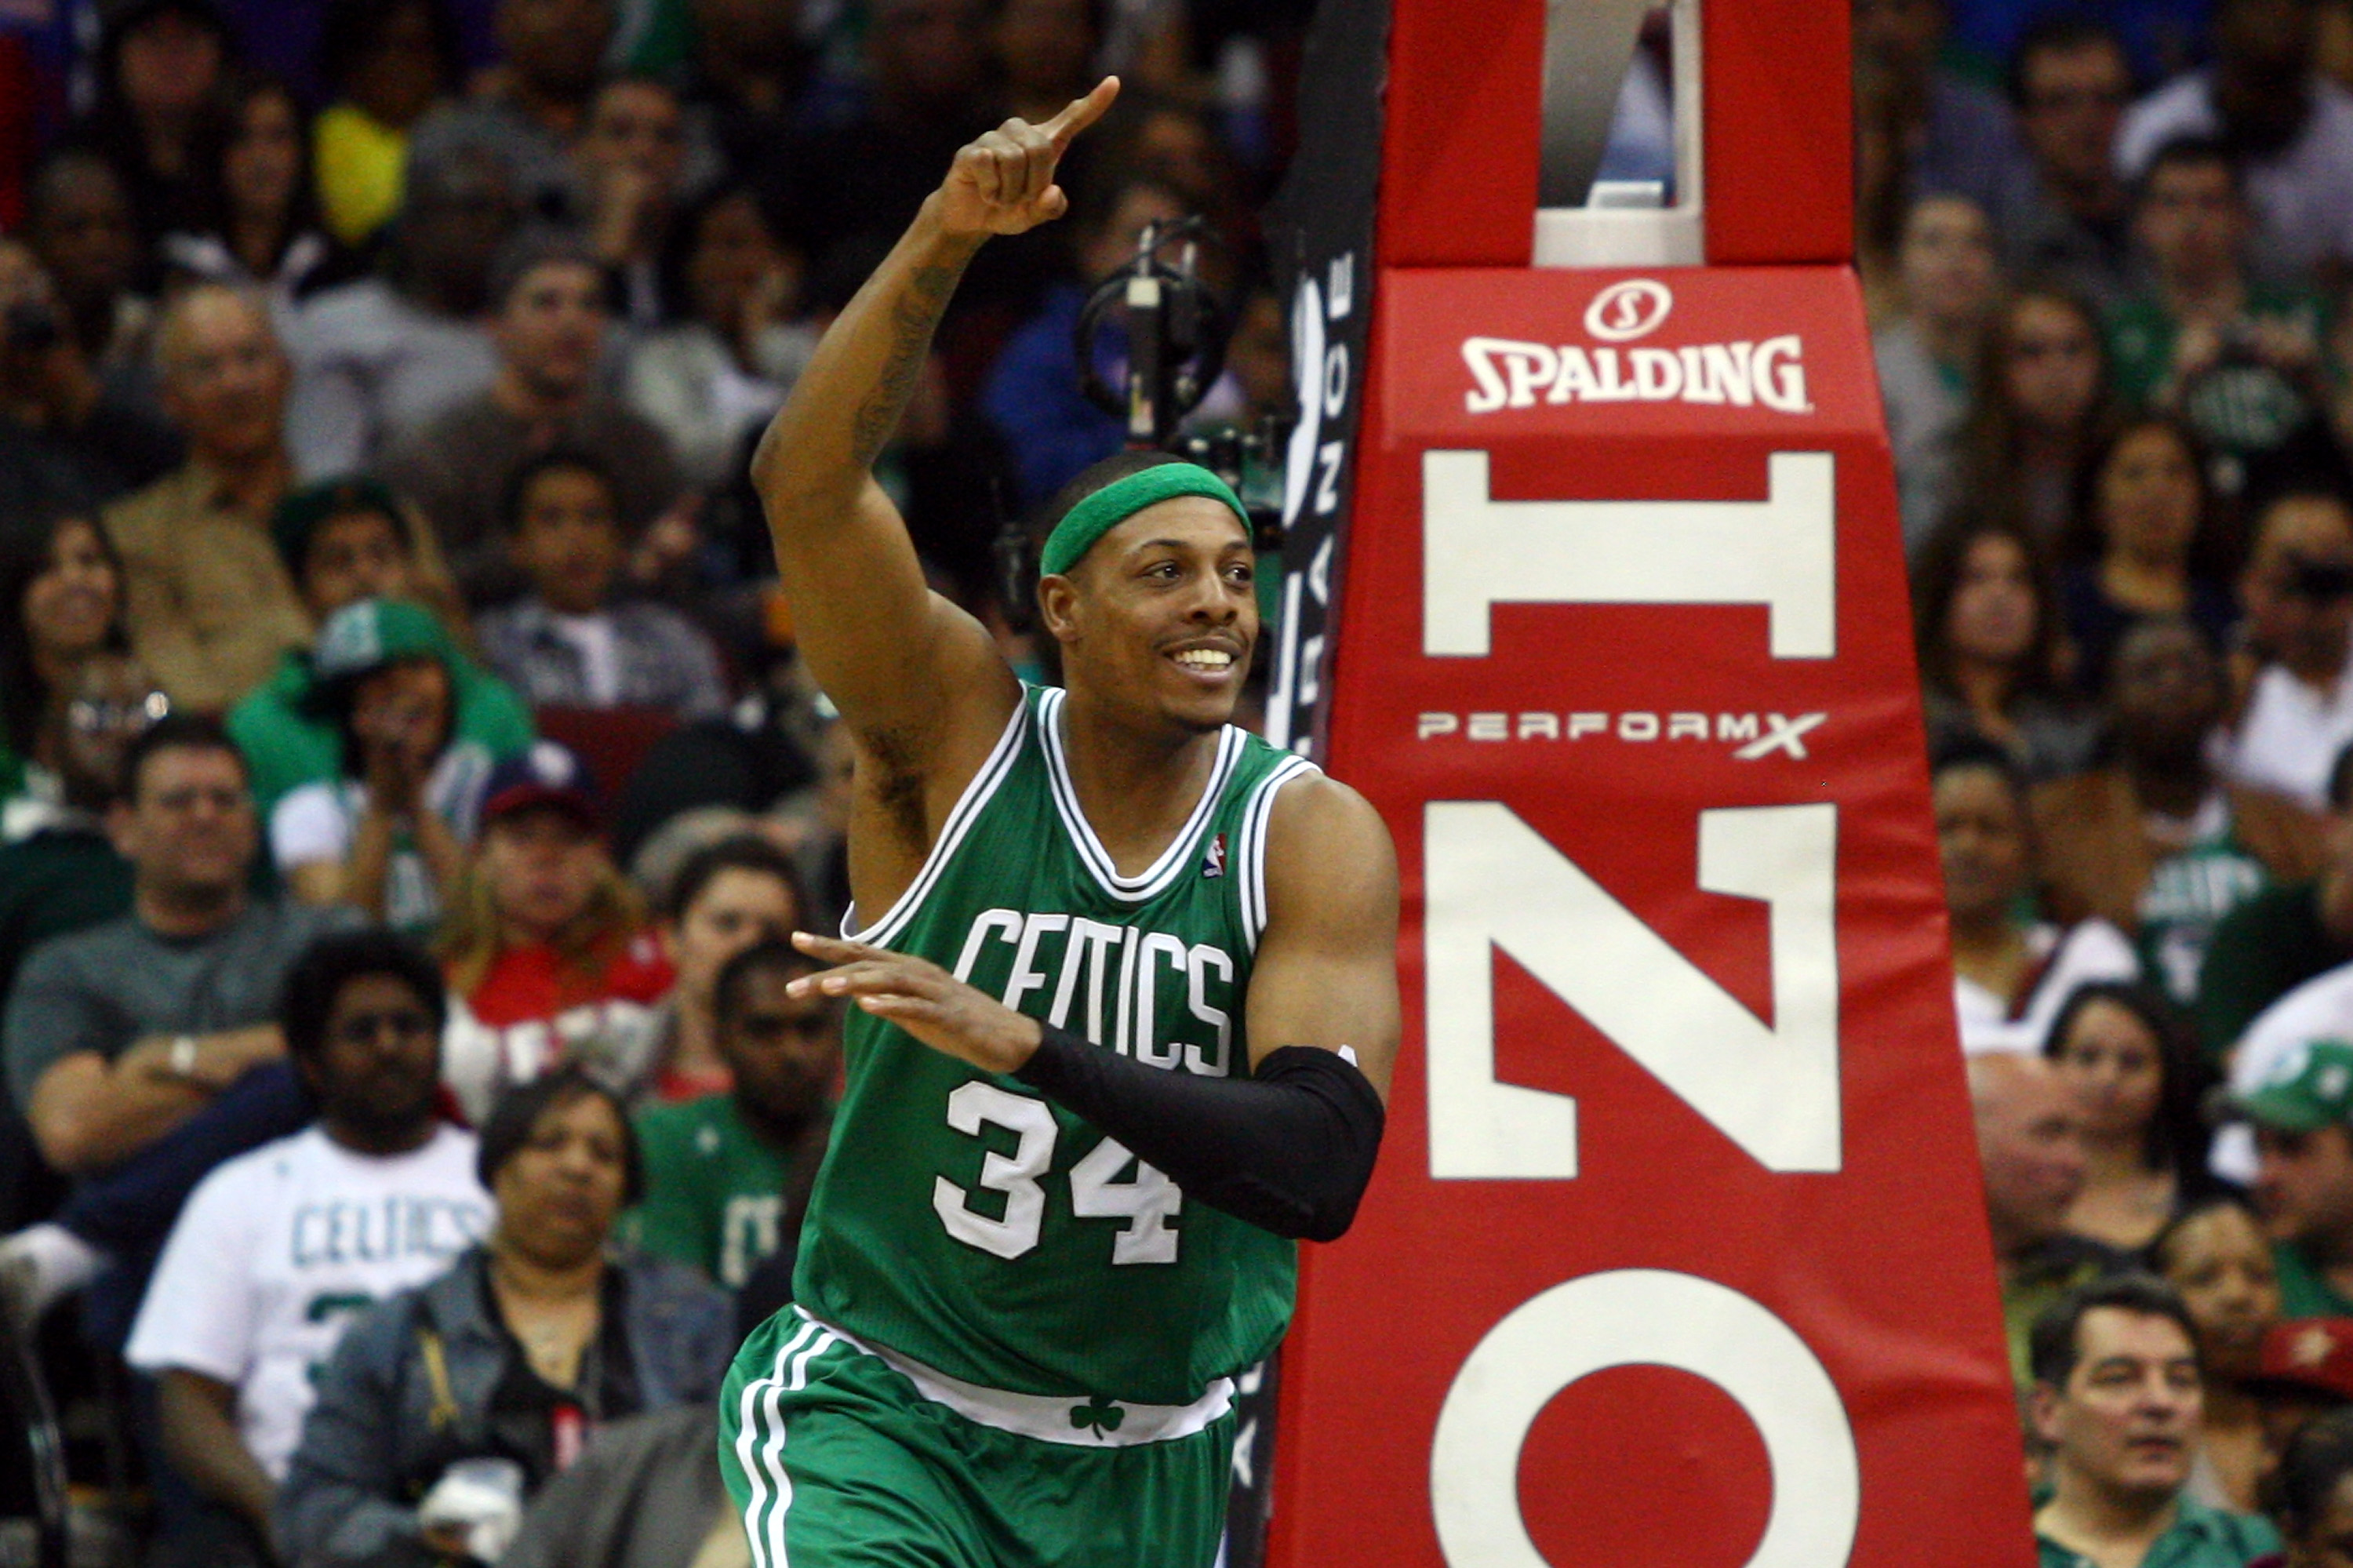 Paul Pierce celebrates after making a shot